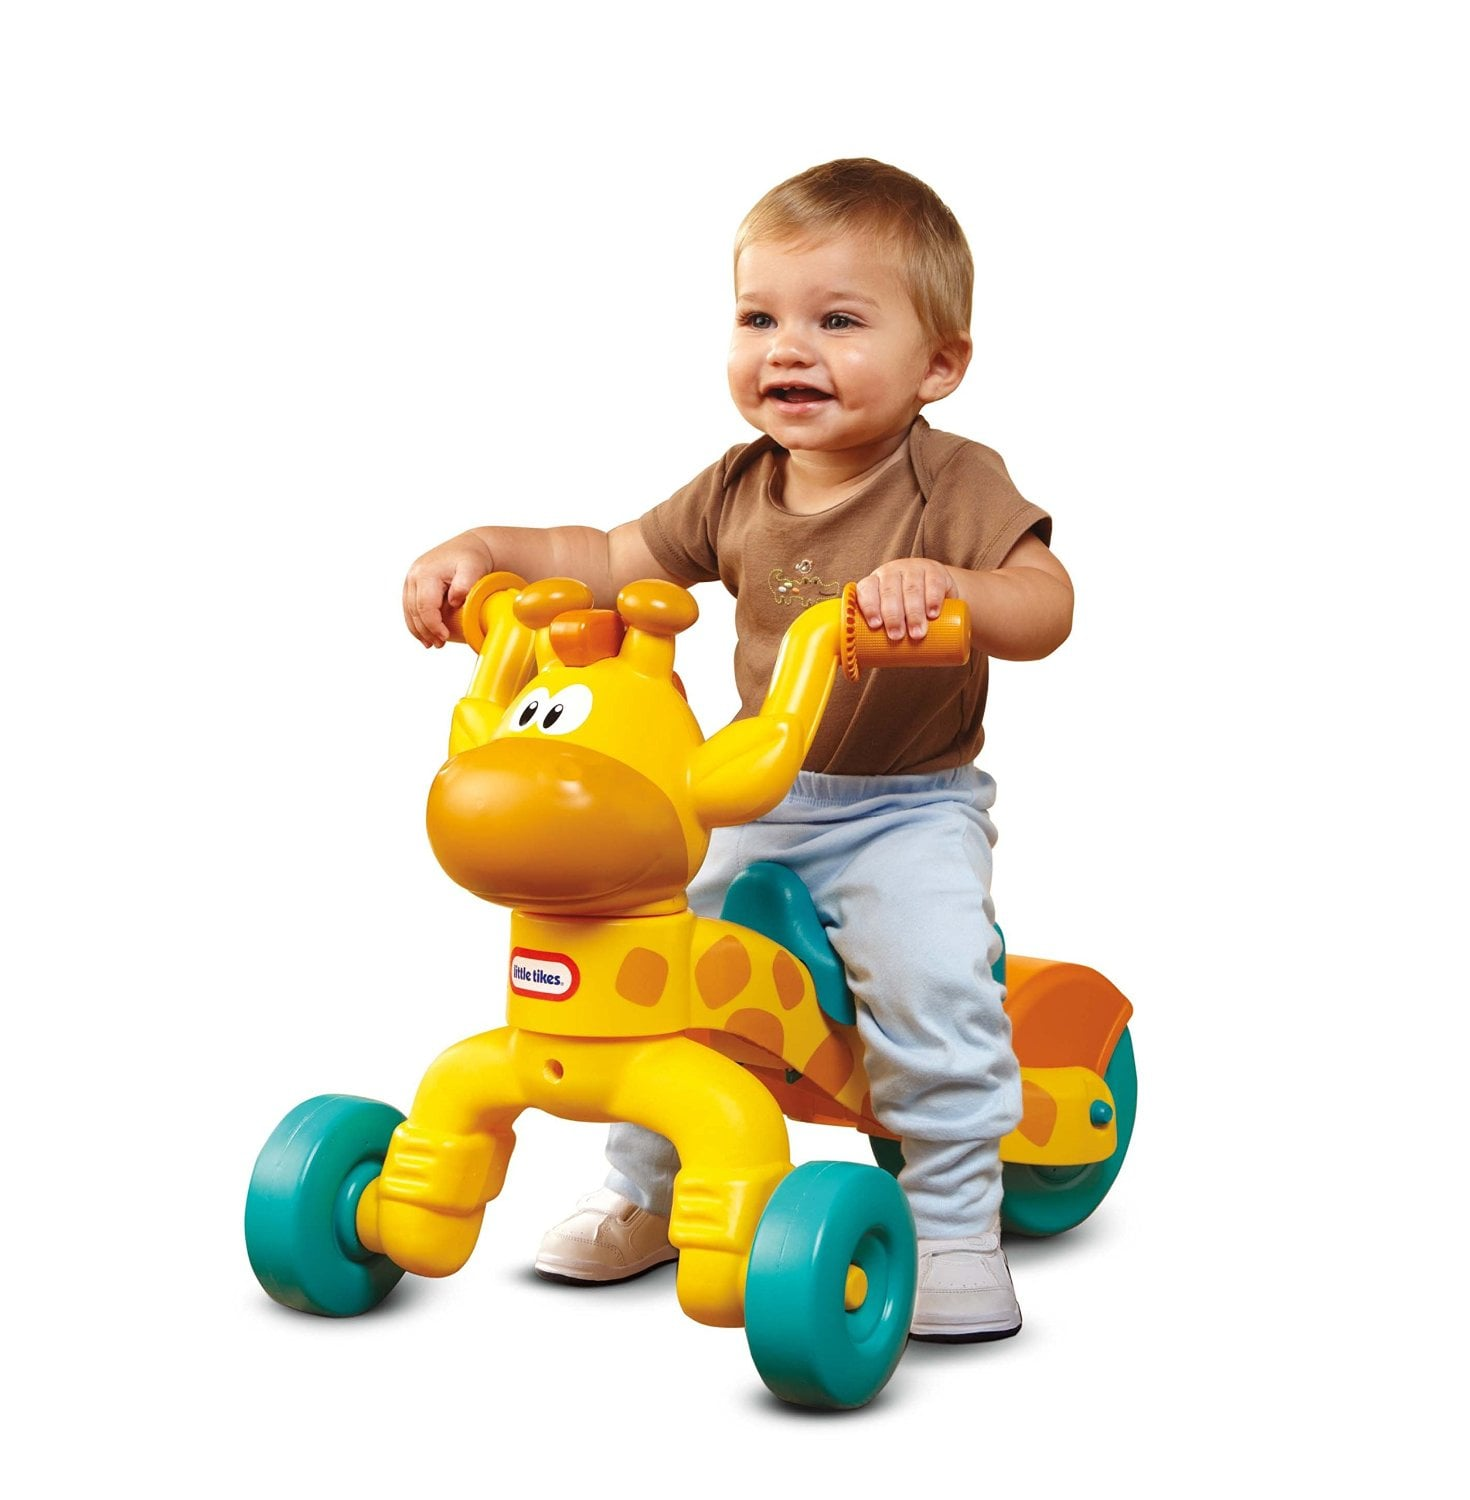 45 Of The Best Toys And Gift Ideas For A 1 Year Old In 2020 Popsugar Family